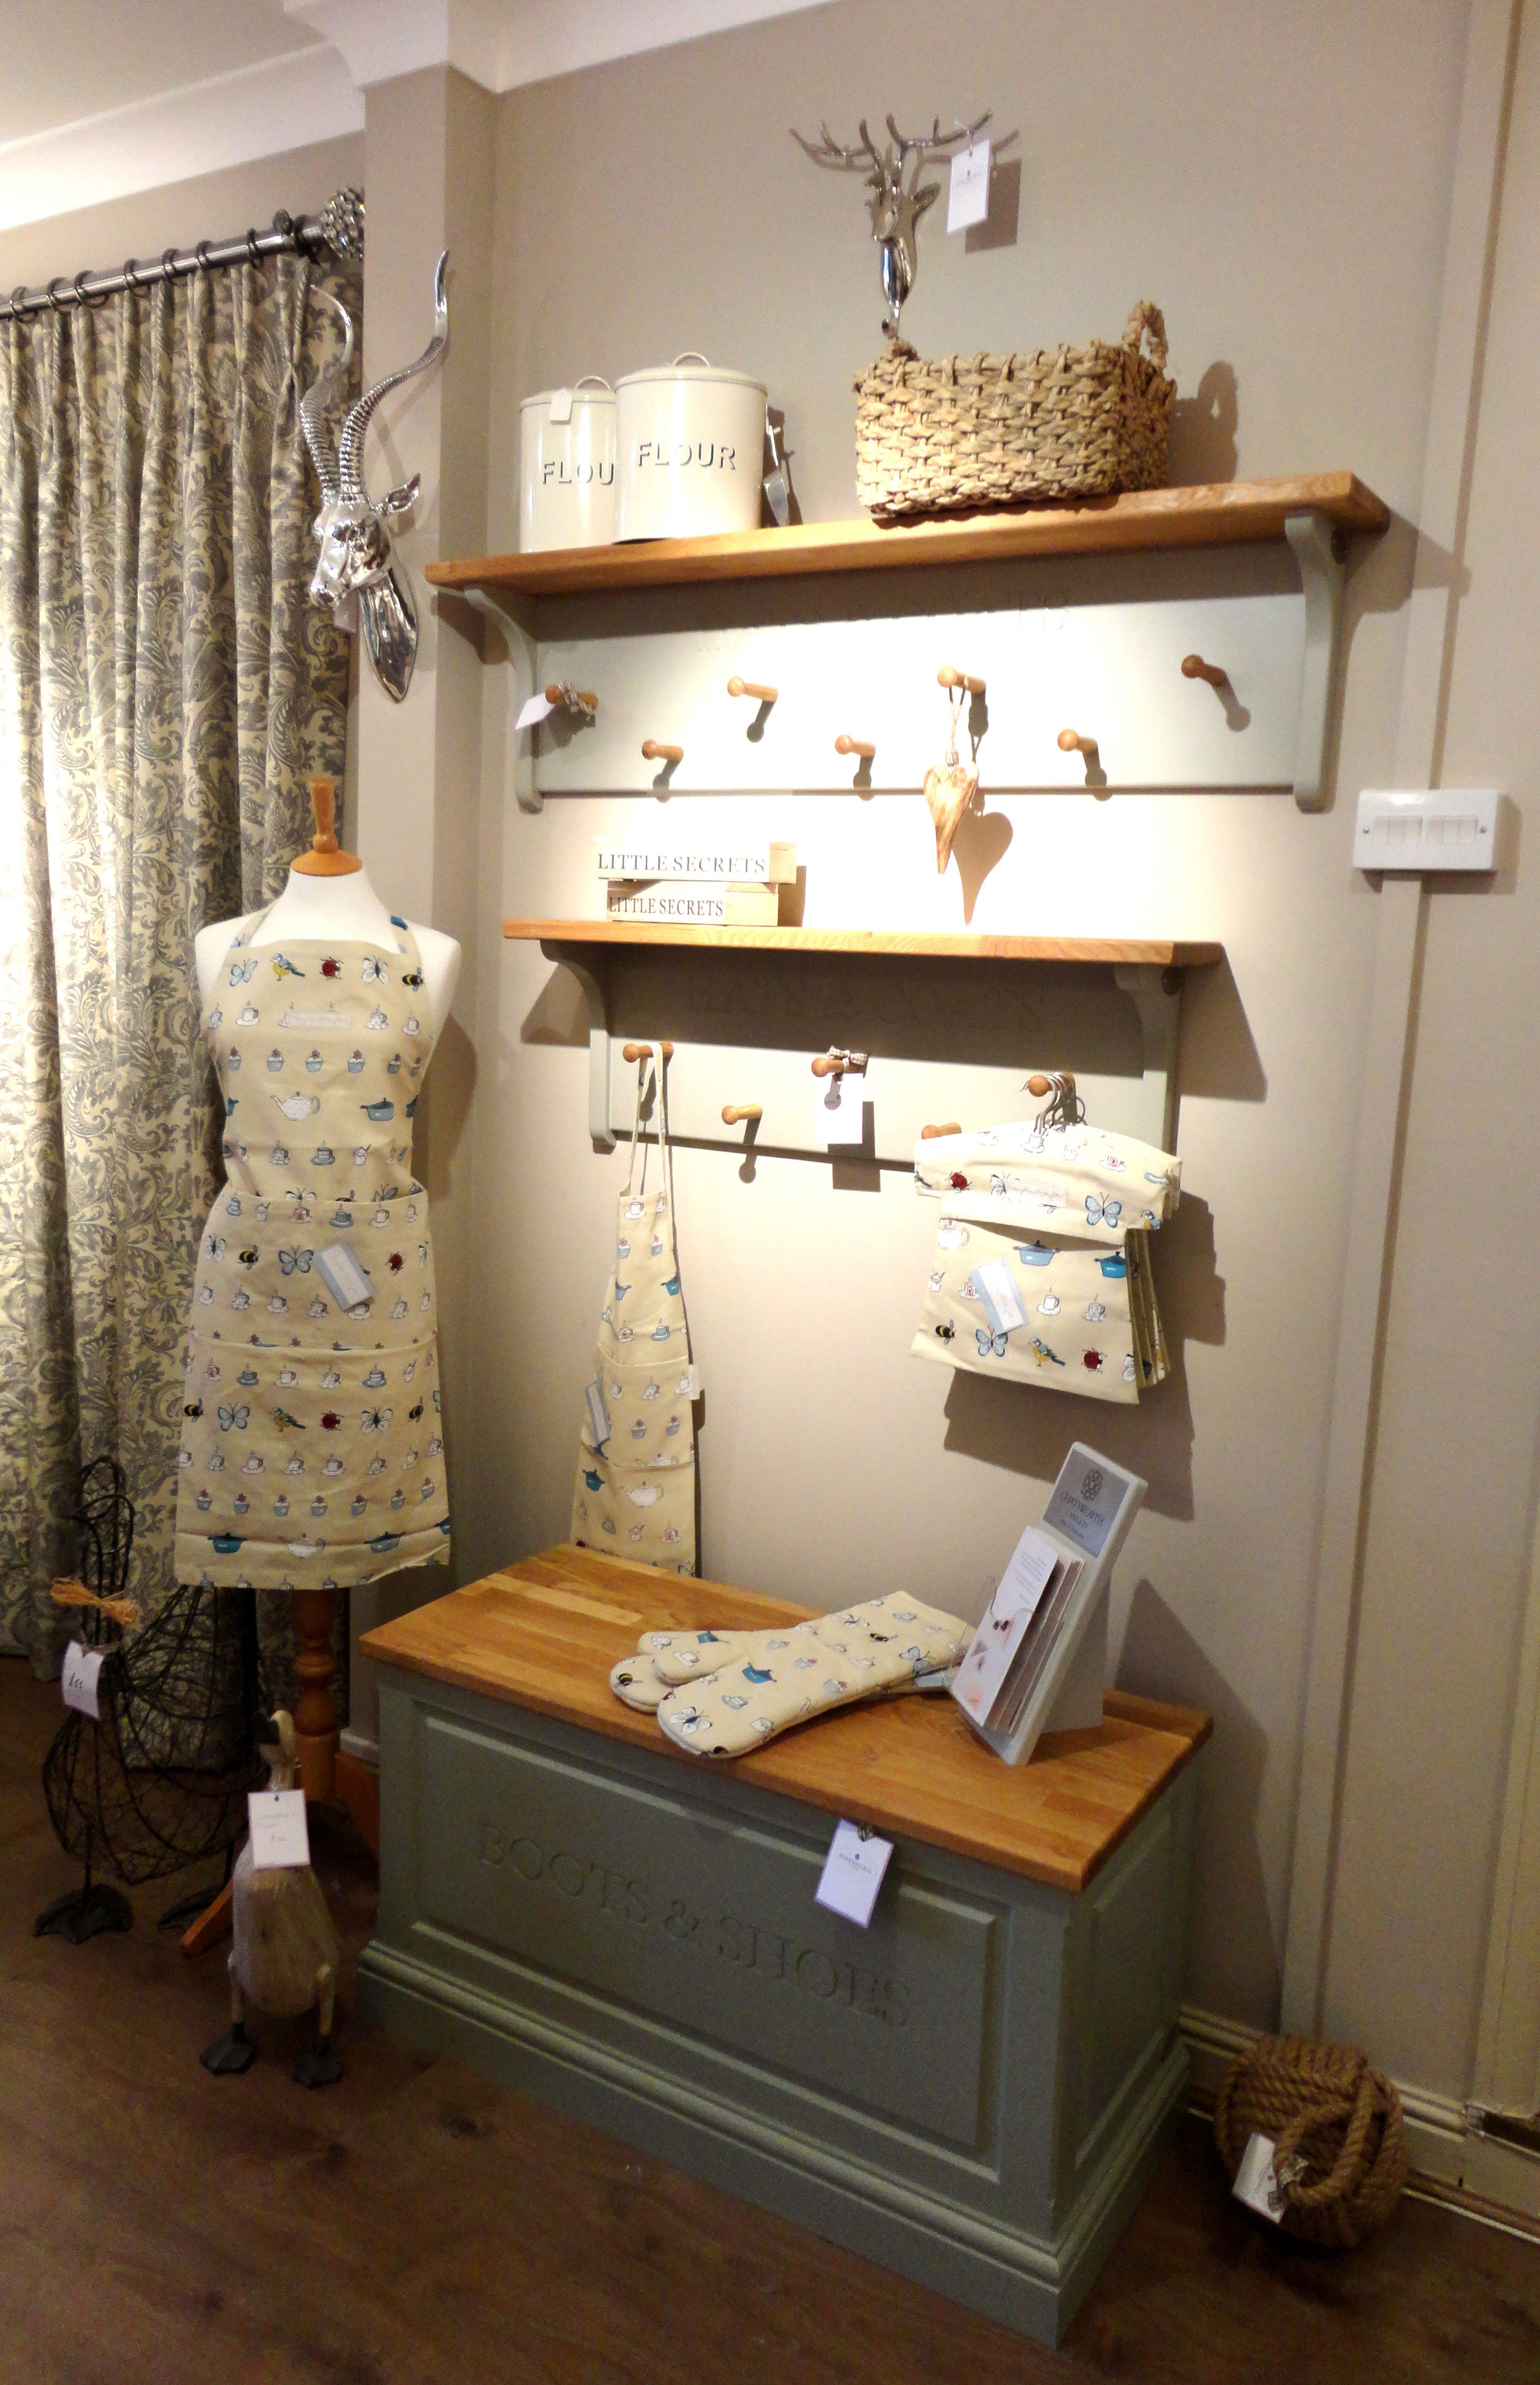 Country Kitchen with Sophie Allport apron